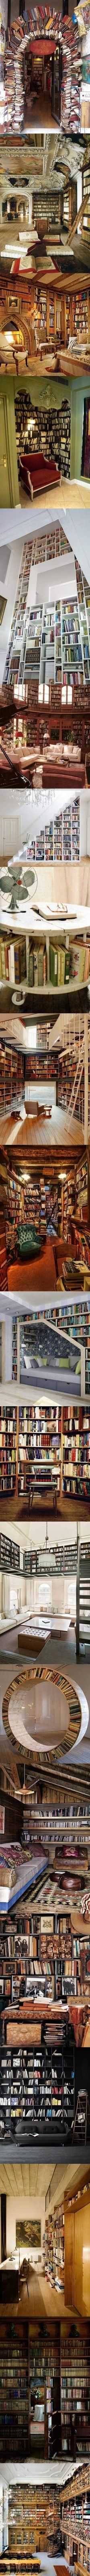 All of my want.  Gorgeous bookshelves and libraries.